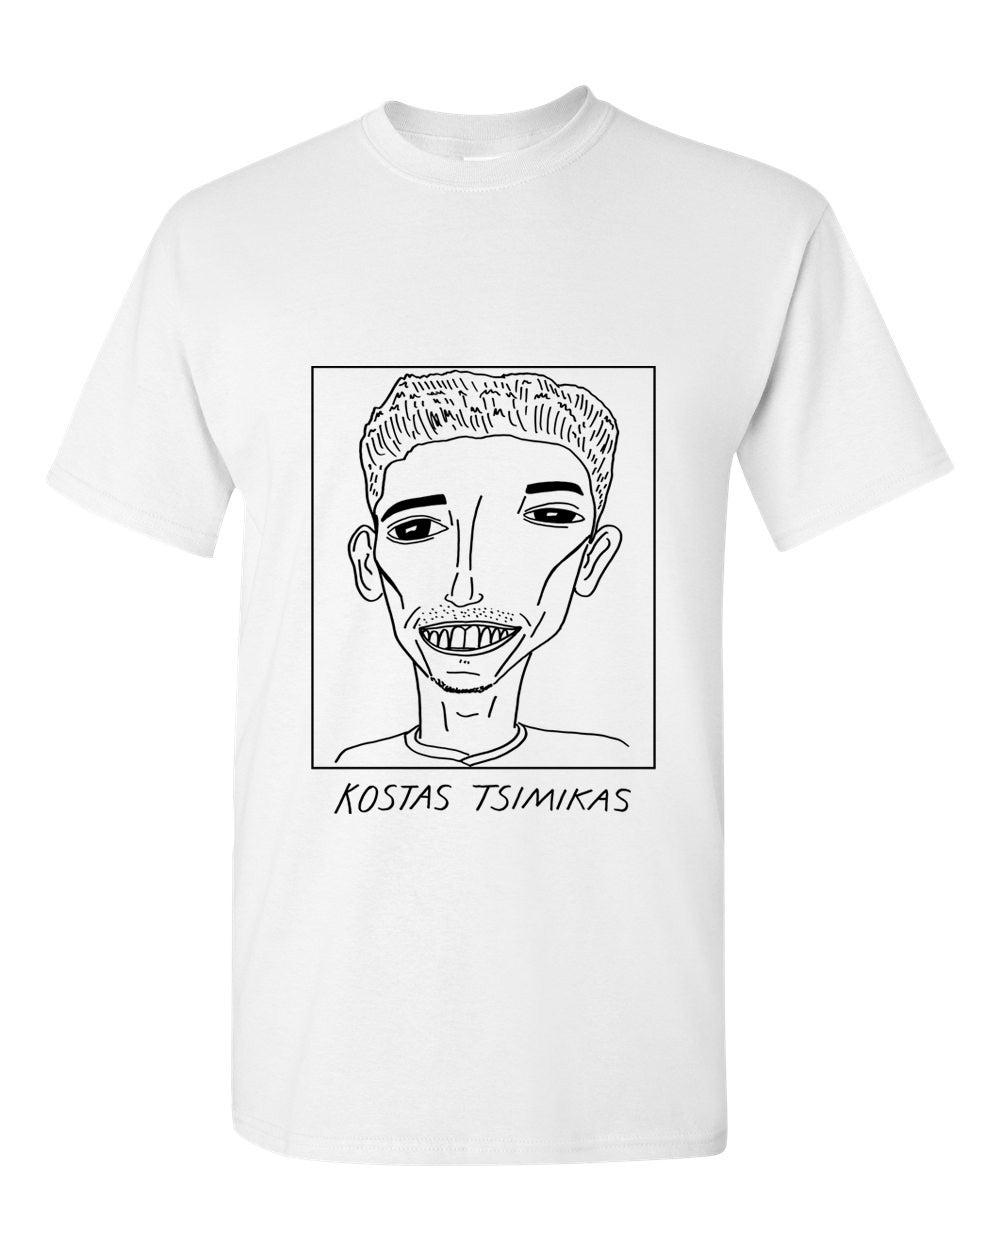 Badly Drawn Footballers T-shirt - Kostas Tsimikas